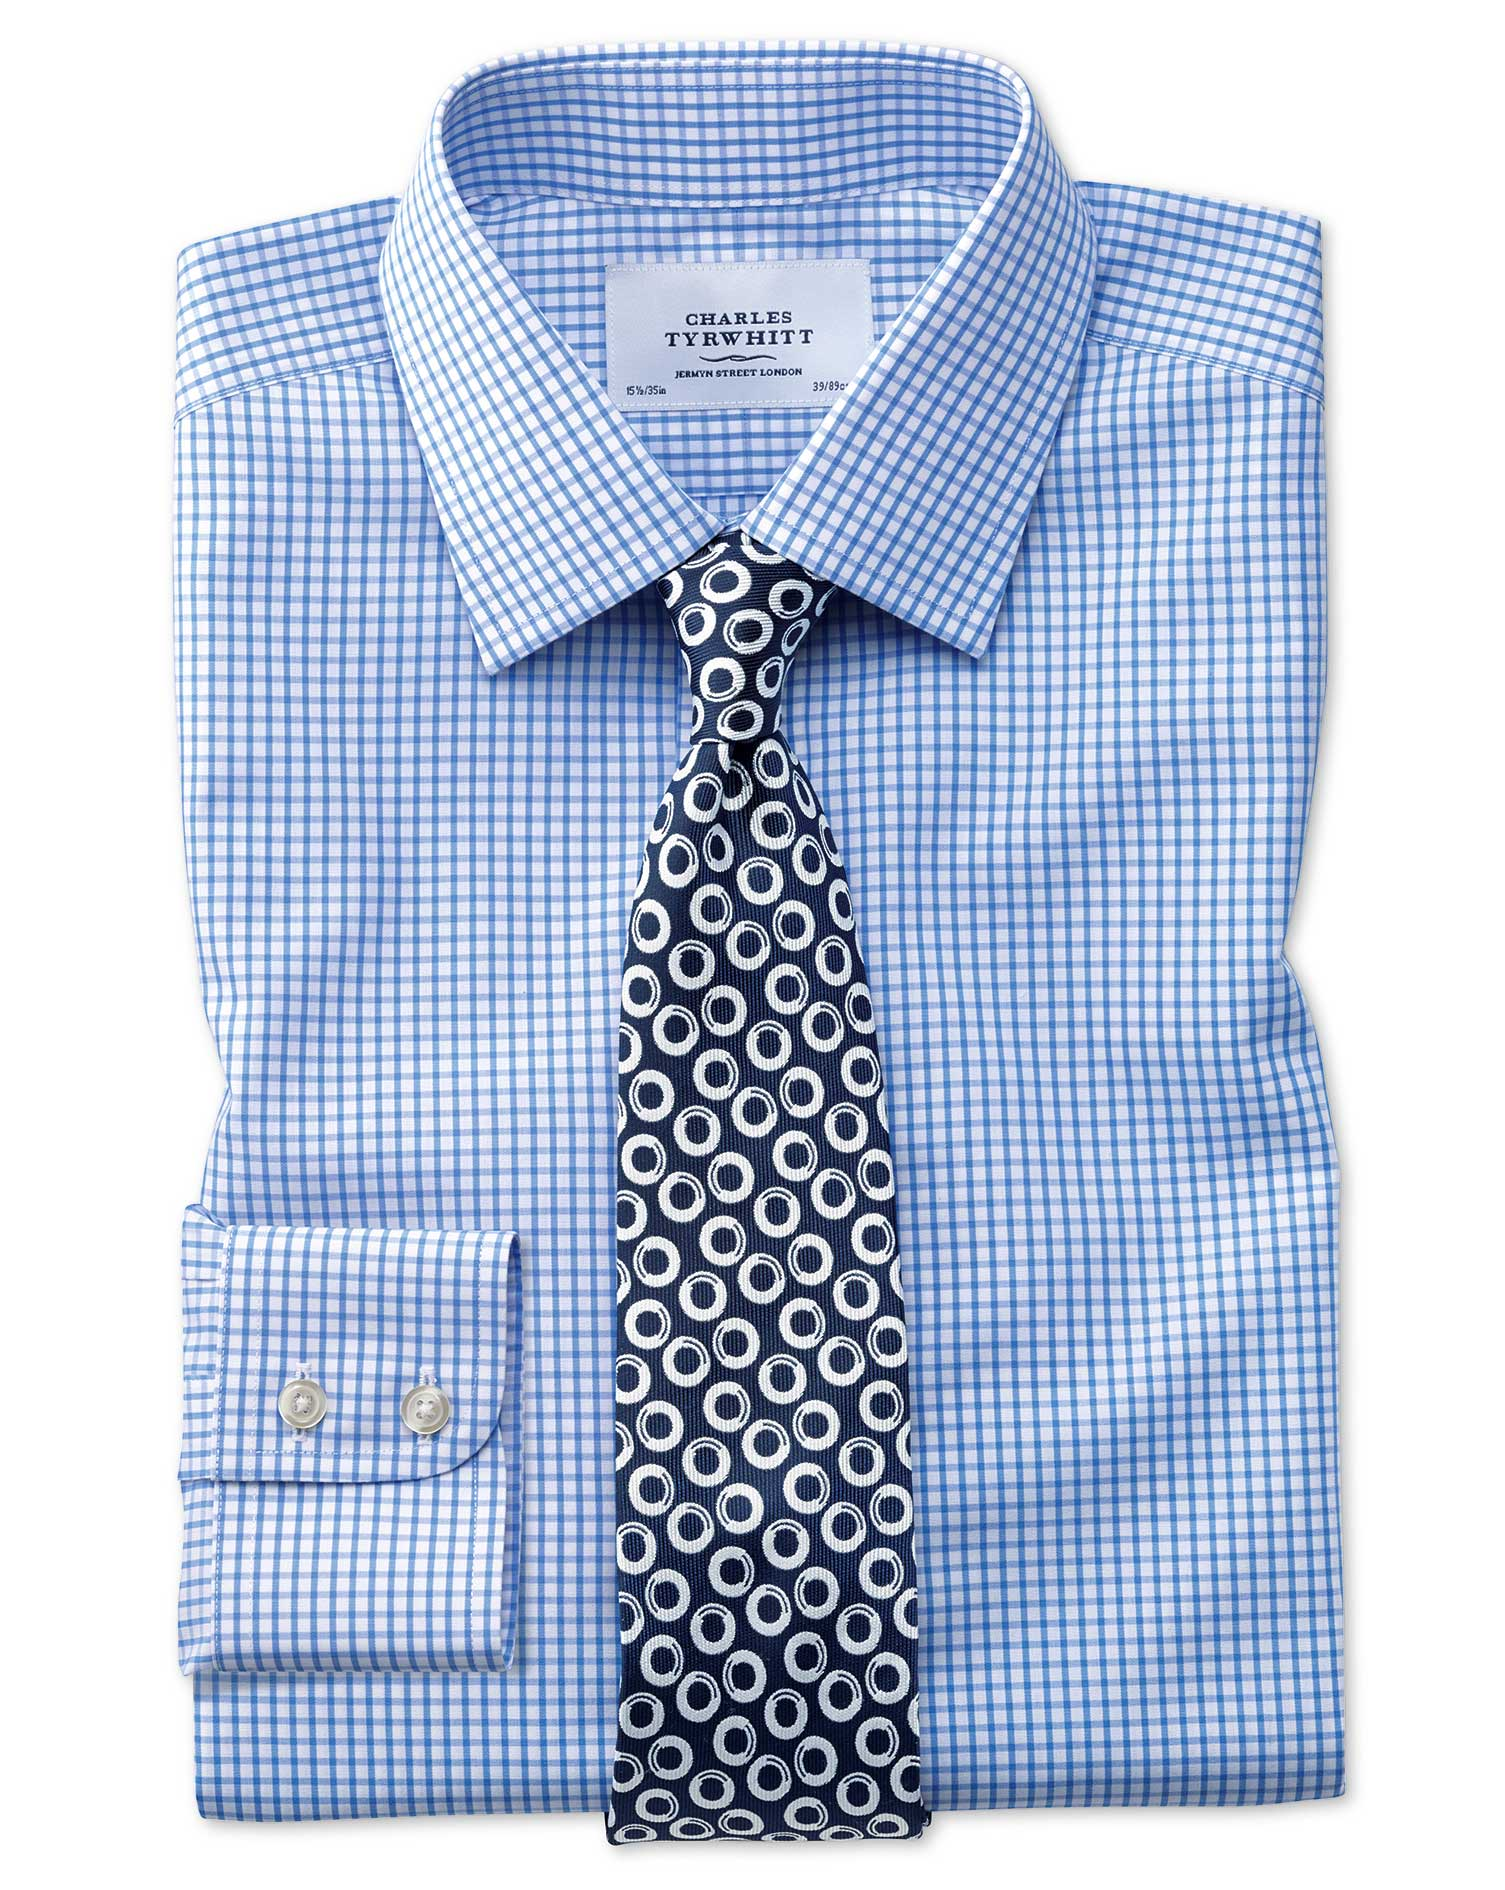 Slim Fit Non-Iron Grid Check Sky Blue Cotton Formal Shirt Single Cuff Size 17/34 by Charles Tyrwhitt